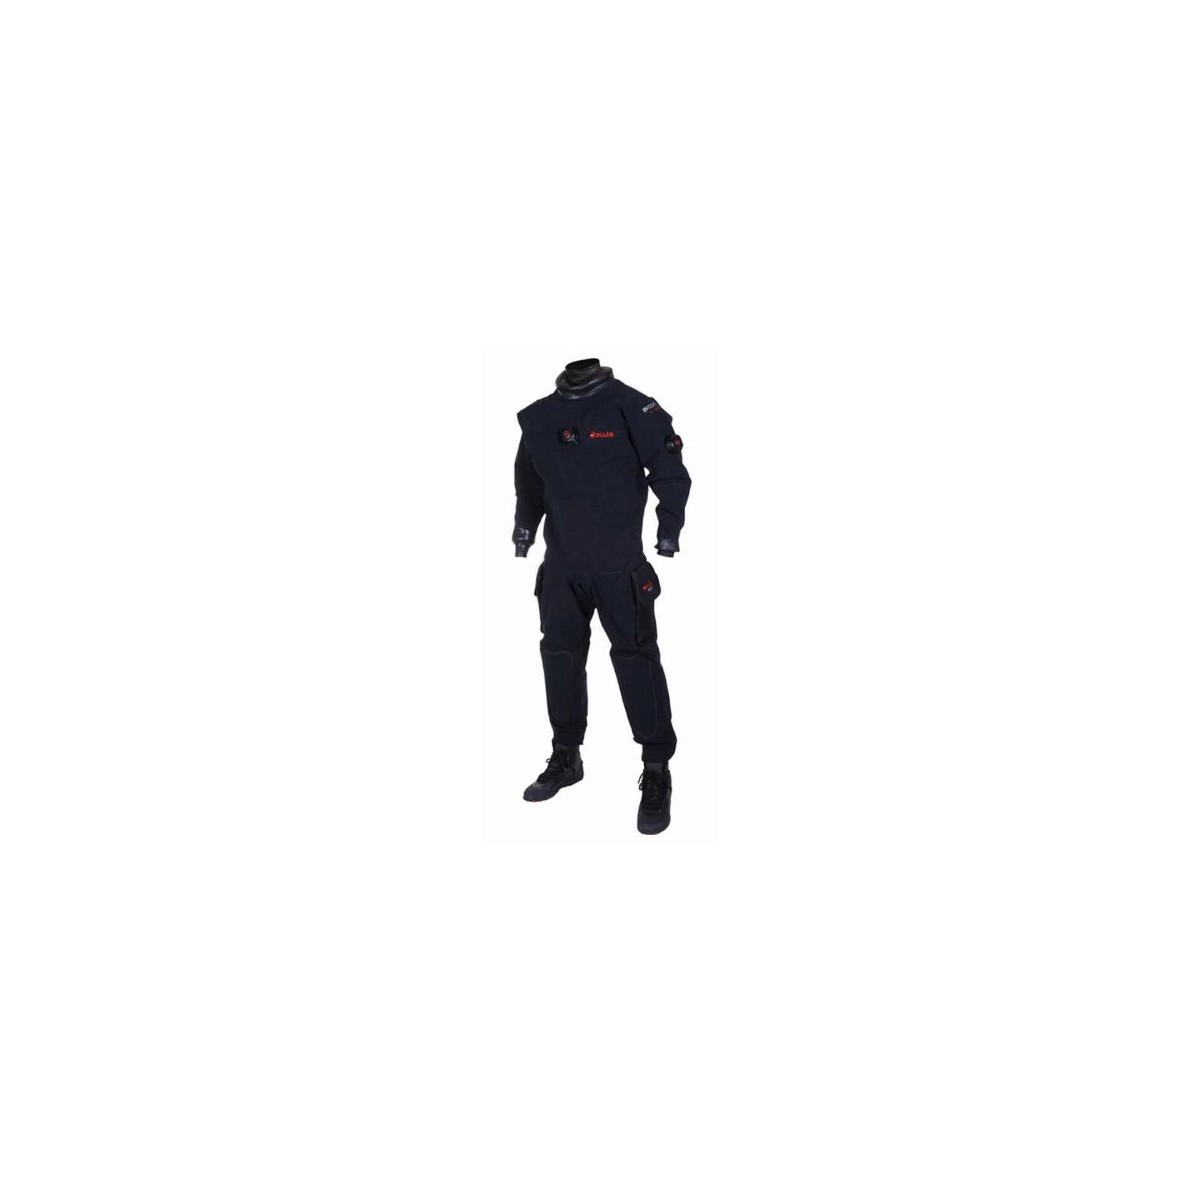 New Hollis BX200 Back Zip BioDry Drysuit (Size 2X-Large Tall) with FREE Ocean Pro 5.0mm NeoClassic Overboots